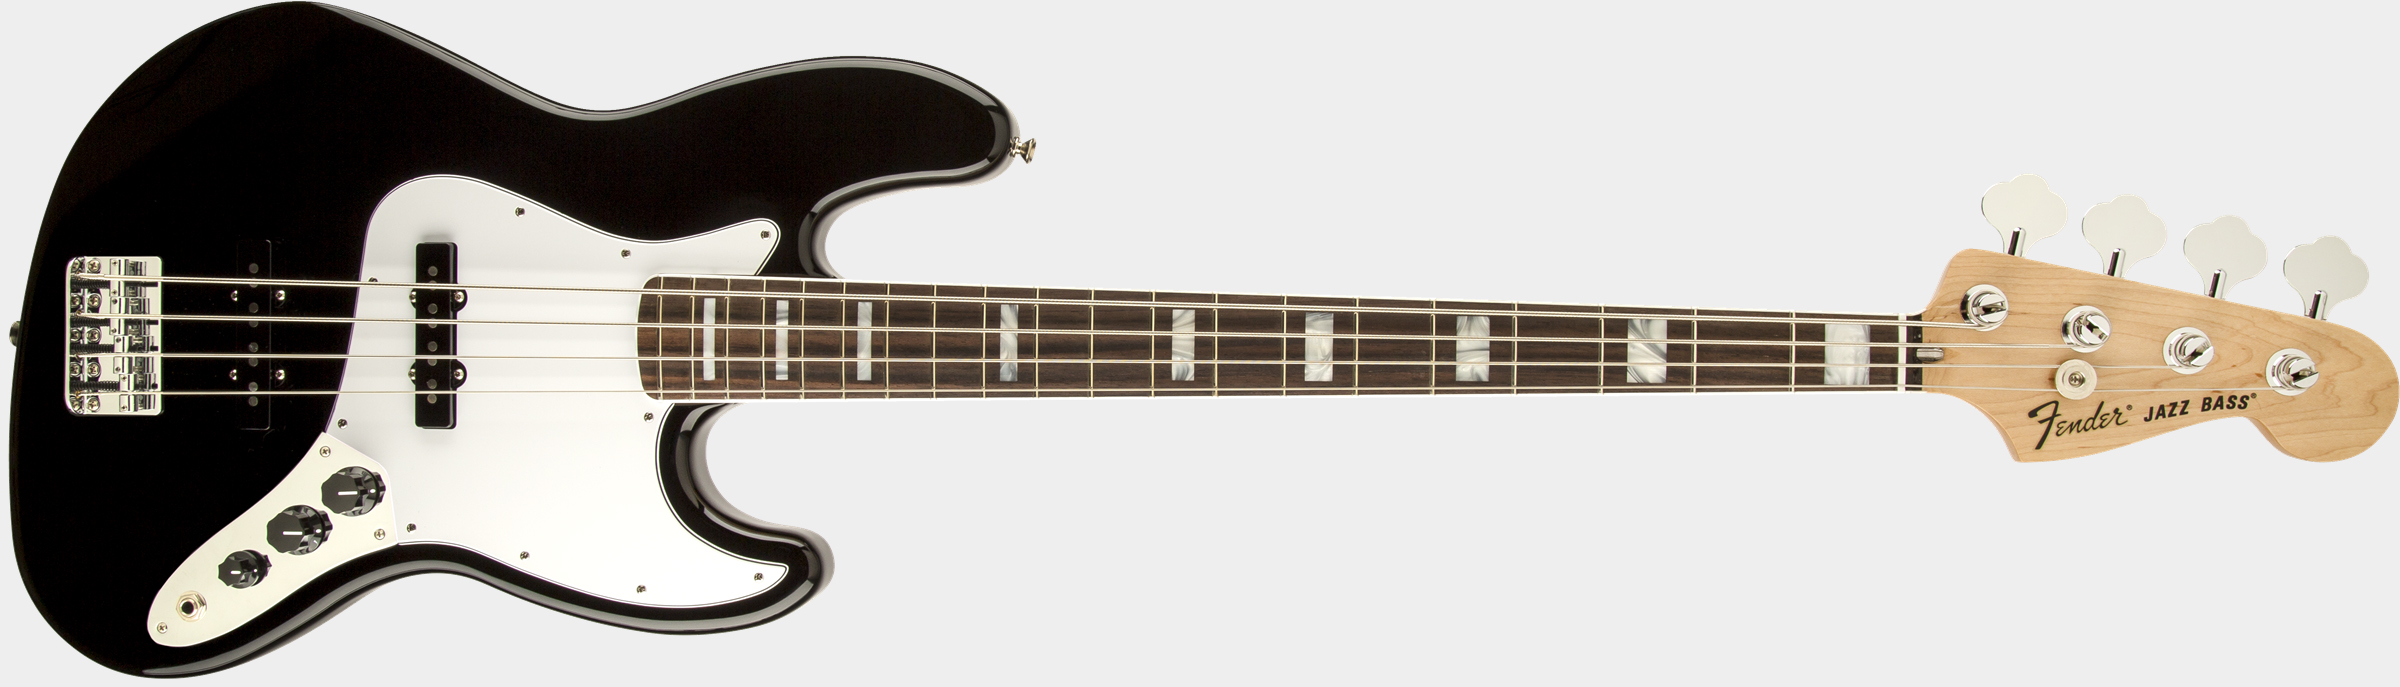 FENDER Classic '70s Jazz Bass Black